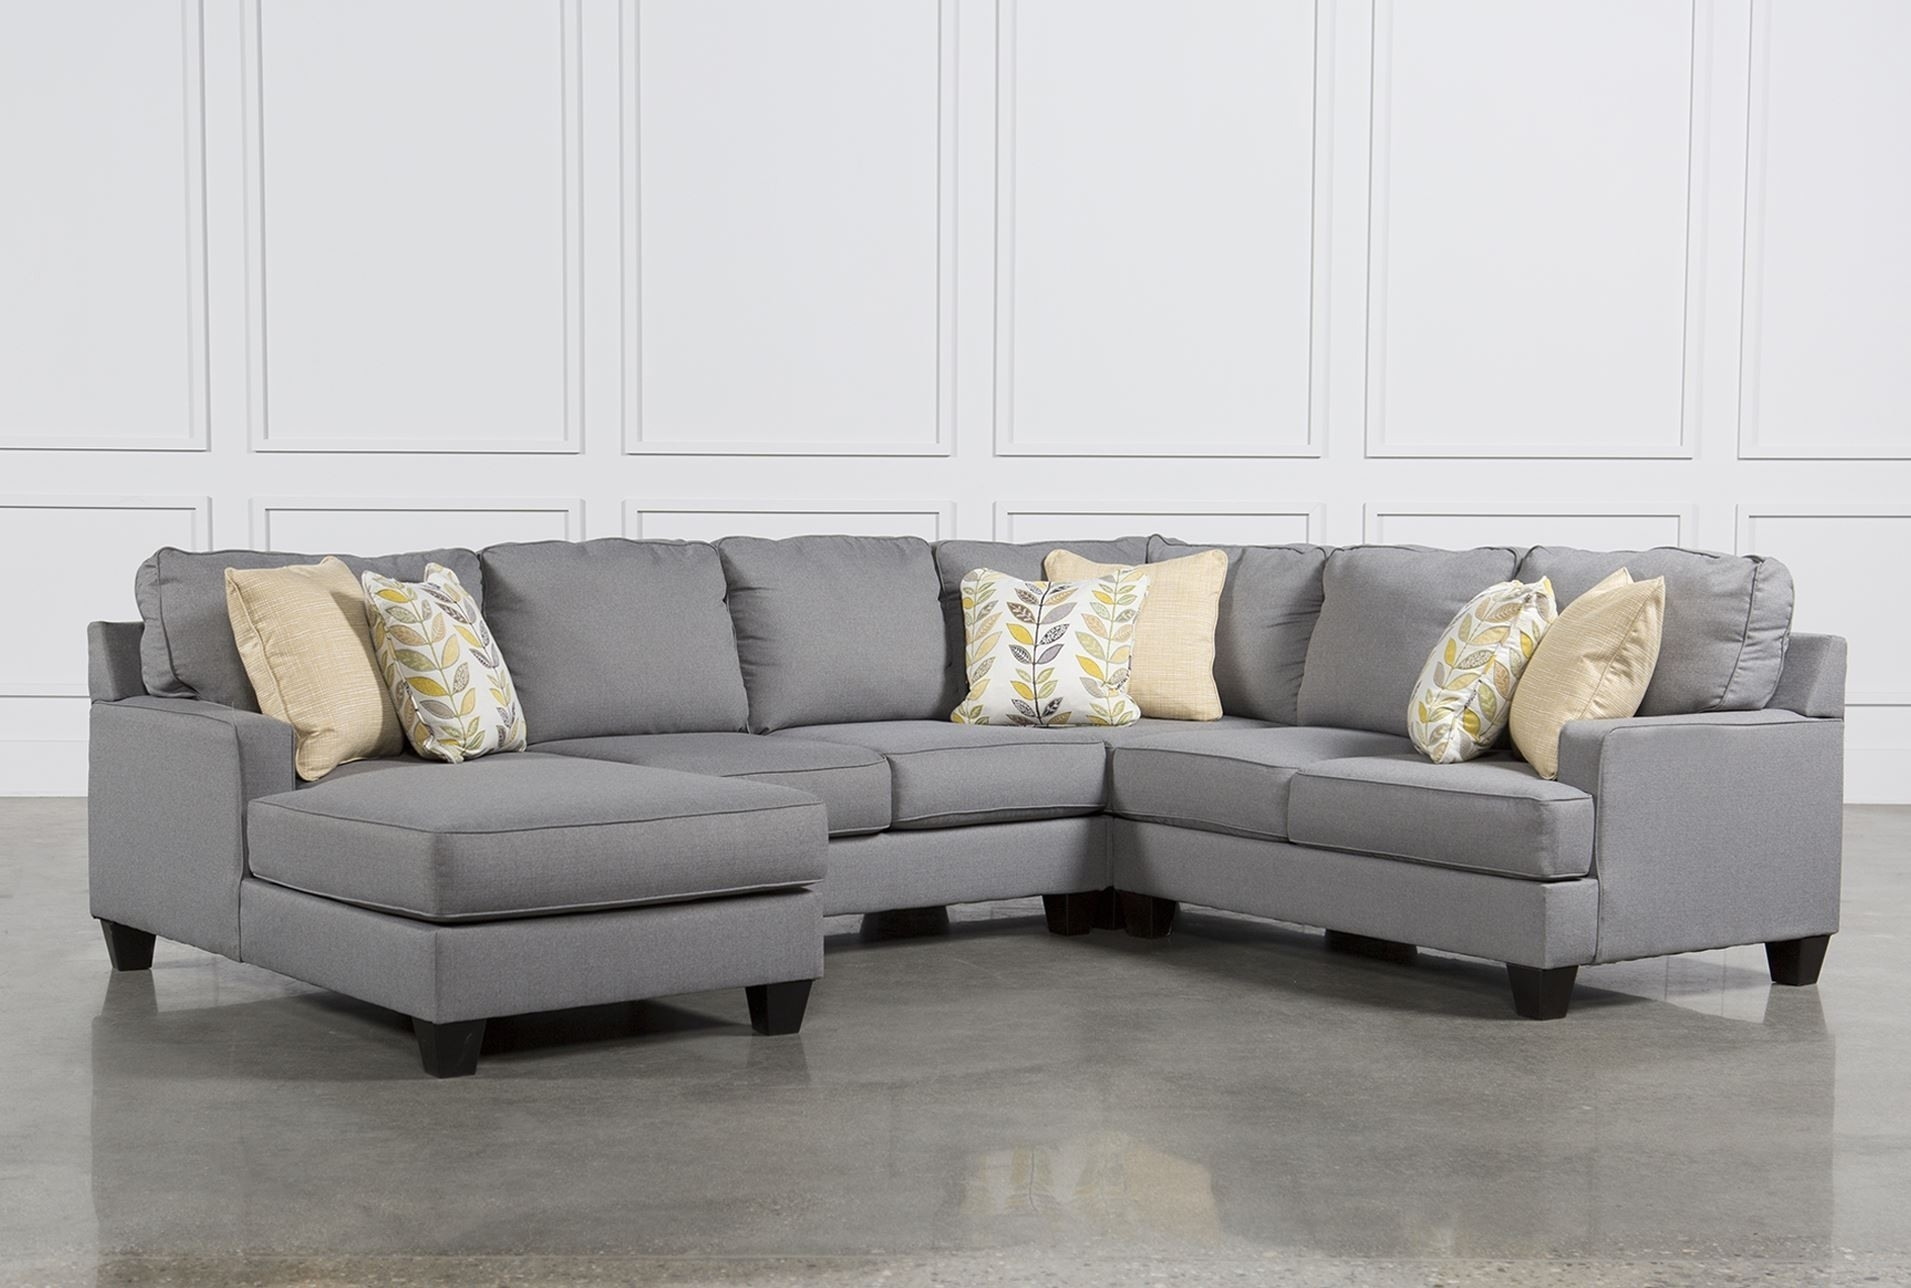 Living Spaces Sectional Couches – Implantologiabogota (Image 18 of 25)